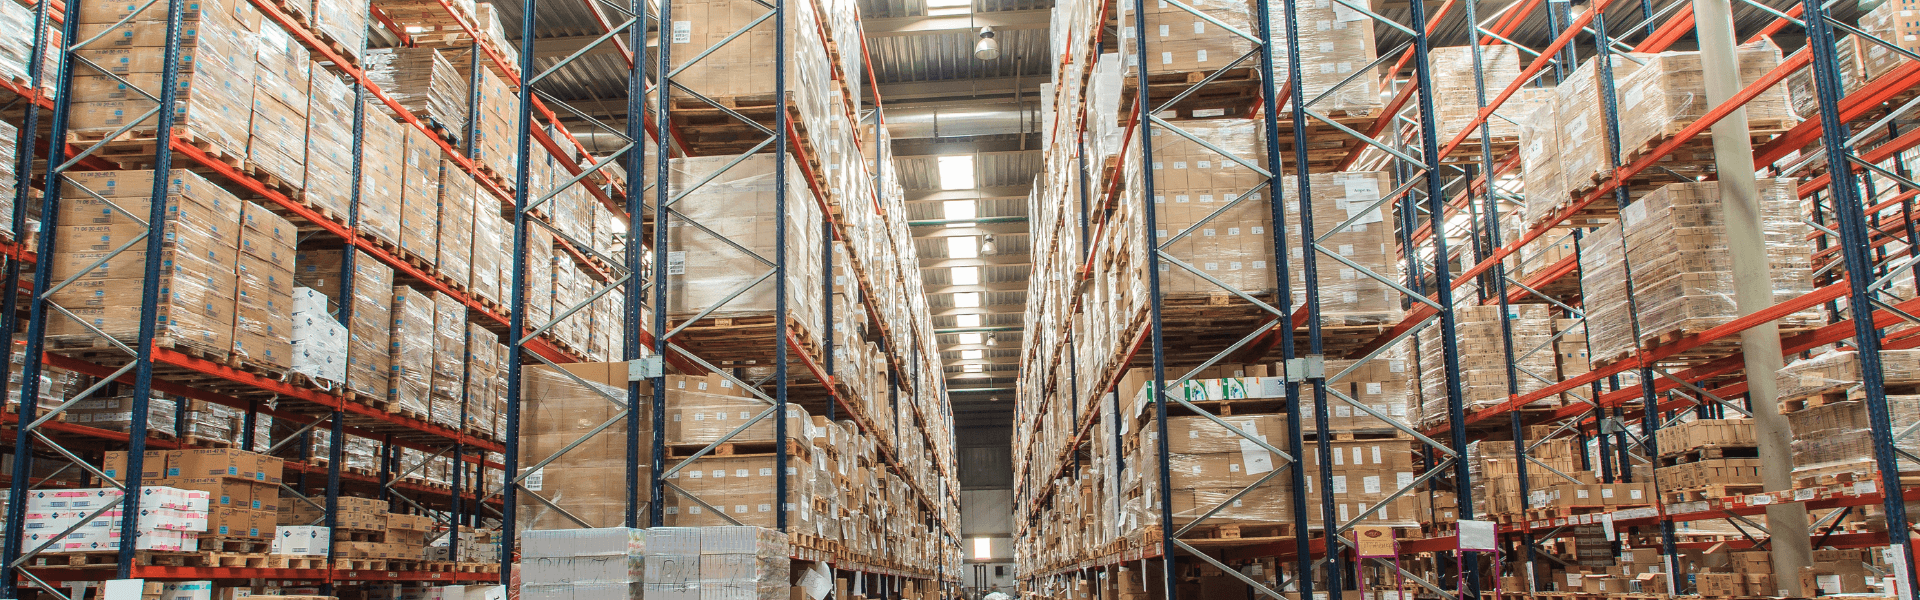 warehousing and distribution, picture of warehouse, 3pl logistics, 3pl, 3pl services, pick and pack, order fulfilment, 24 hour shipping, next day delivery courier,